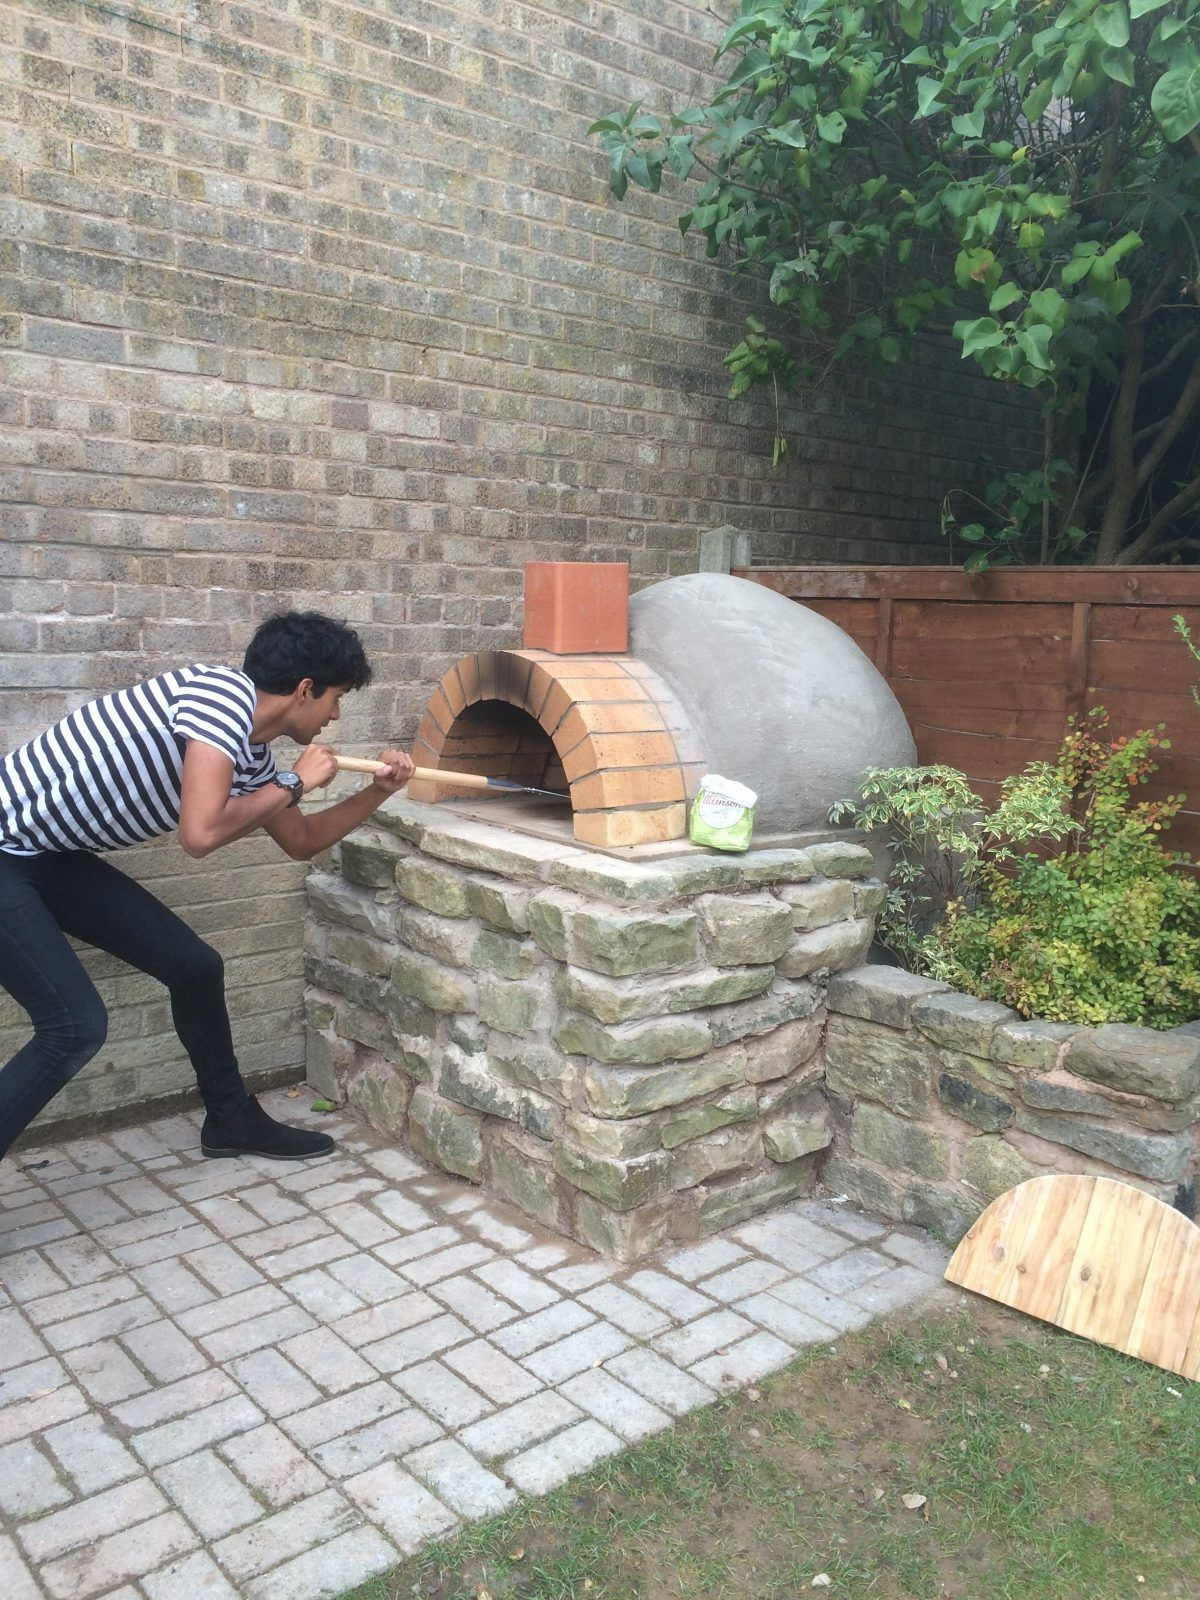 DIY Homemade Pizza Oven | Step By Step Guide #brickpizzaovenoutdoor